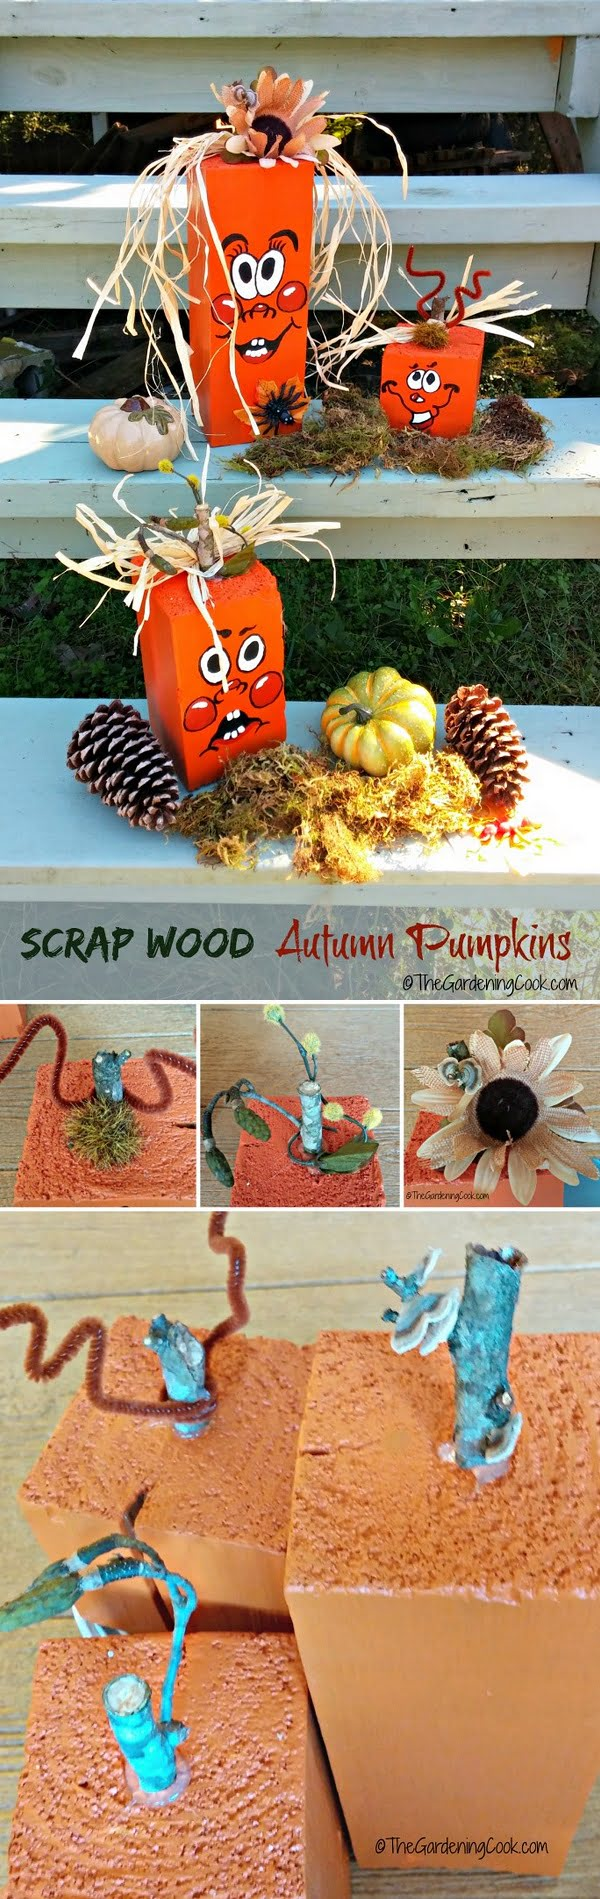 Check out the tutorial on how to make #DIY #rustic adorable scrap wood pumpkins #woodworking #homedecor #fall